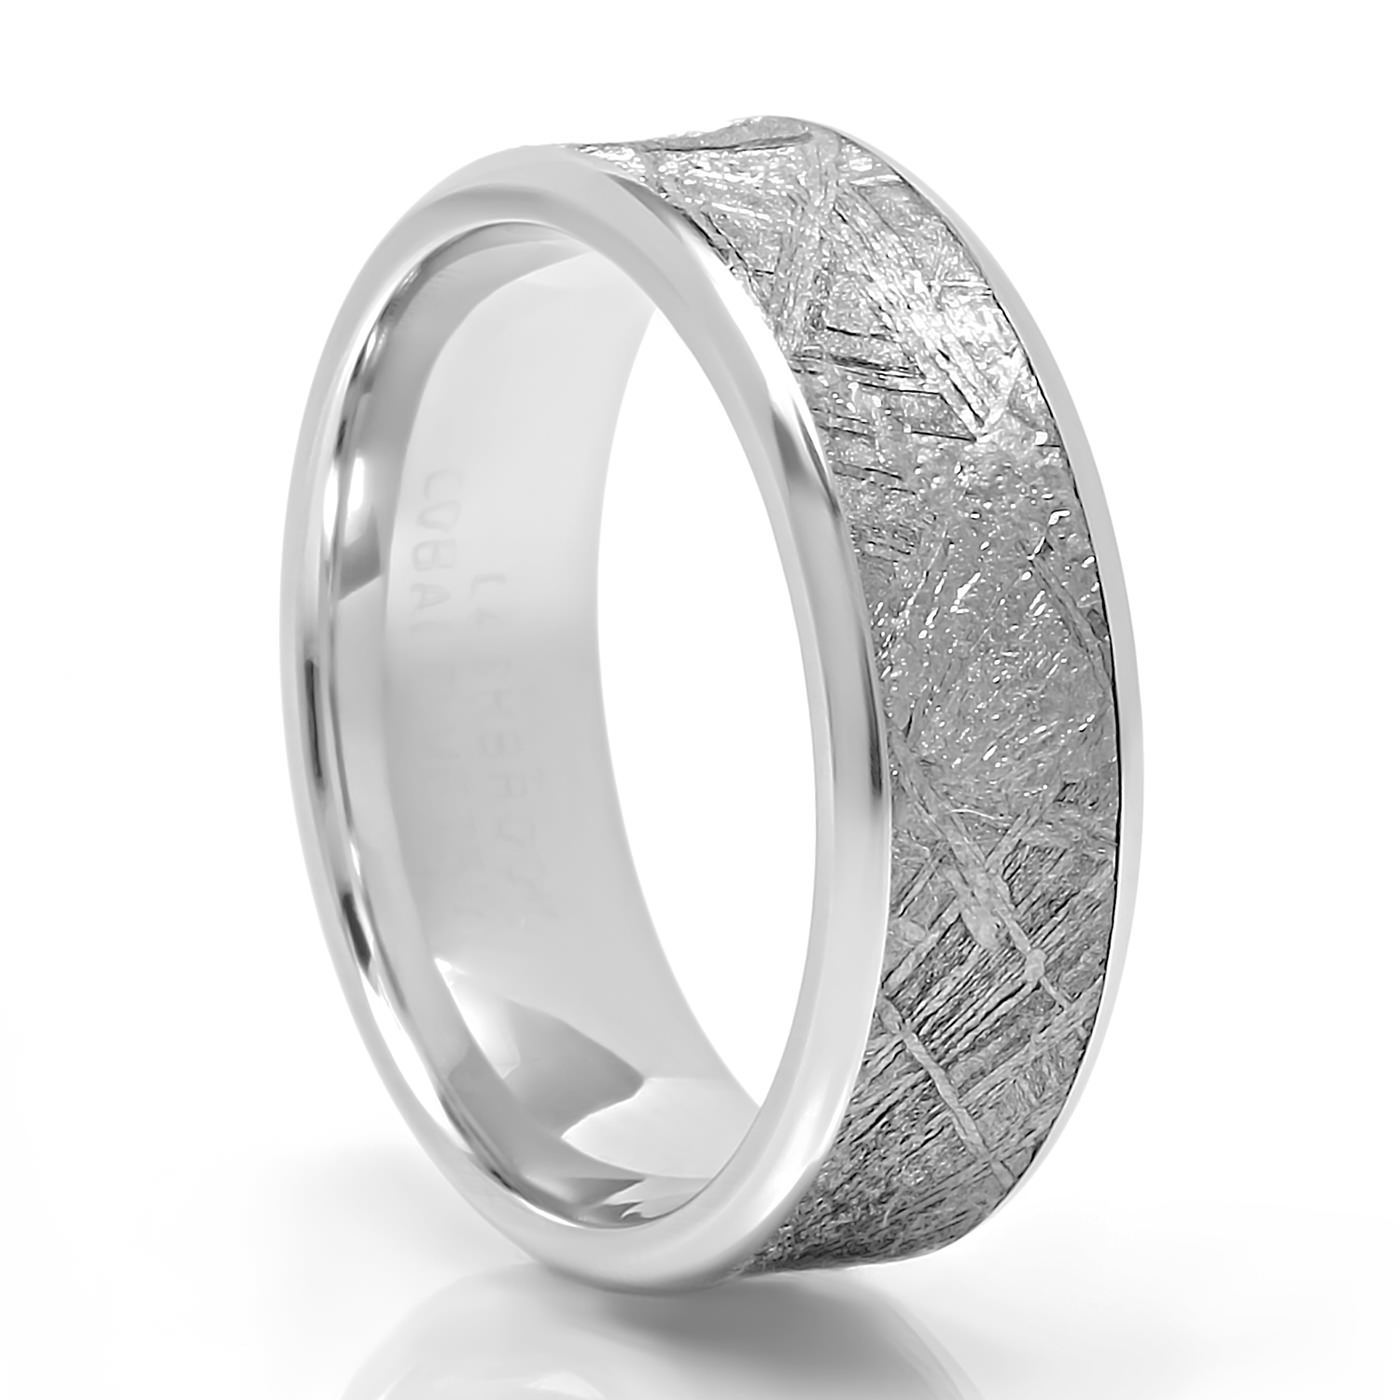 Lashbrook Fusion Cobalt Gibeon Meteorite Wedding Band 7MM